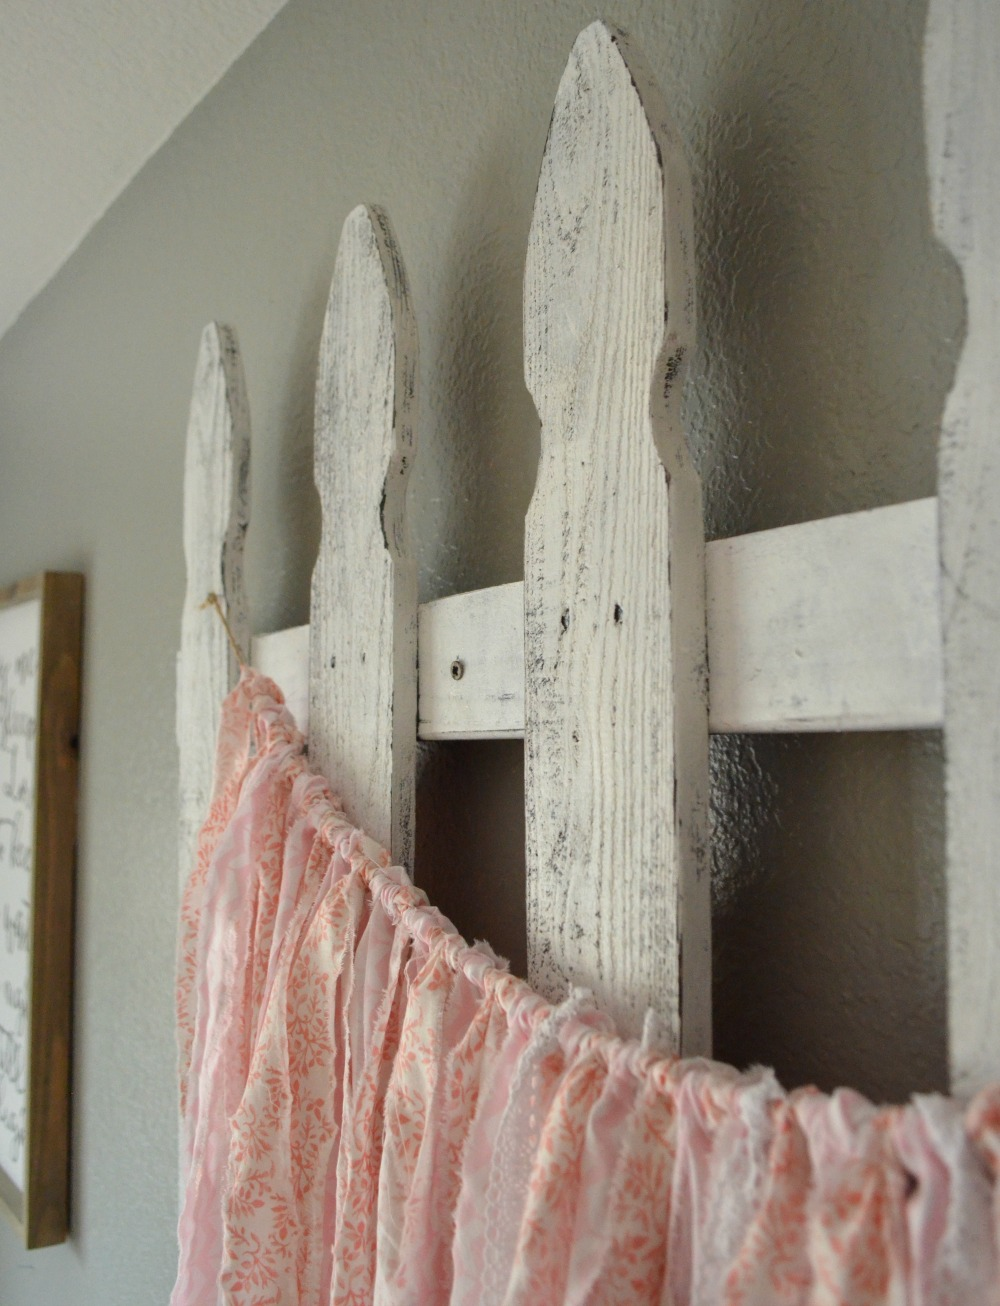 Easy Tip to Give New Wood an Aged Look. This quick trick will help give any new wood an aged, vintage look. Picket fence decor in girl's nursery.